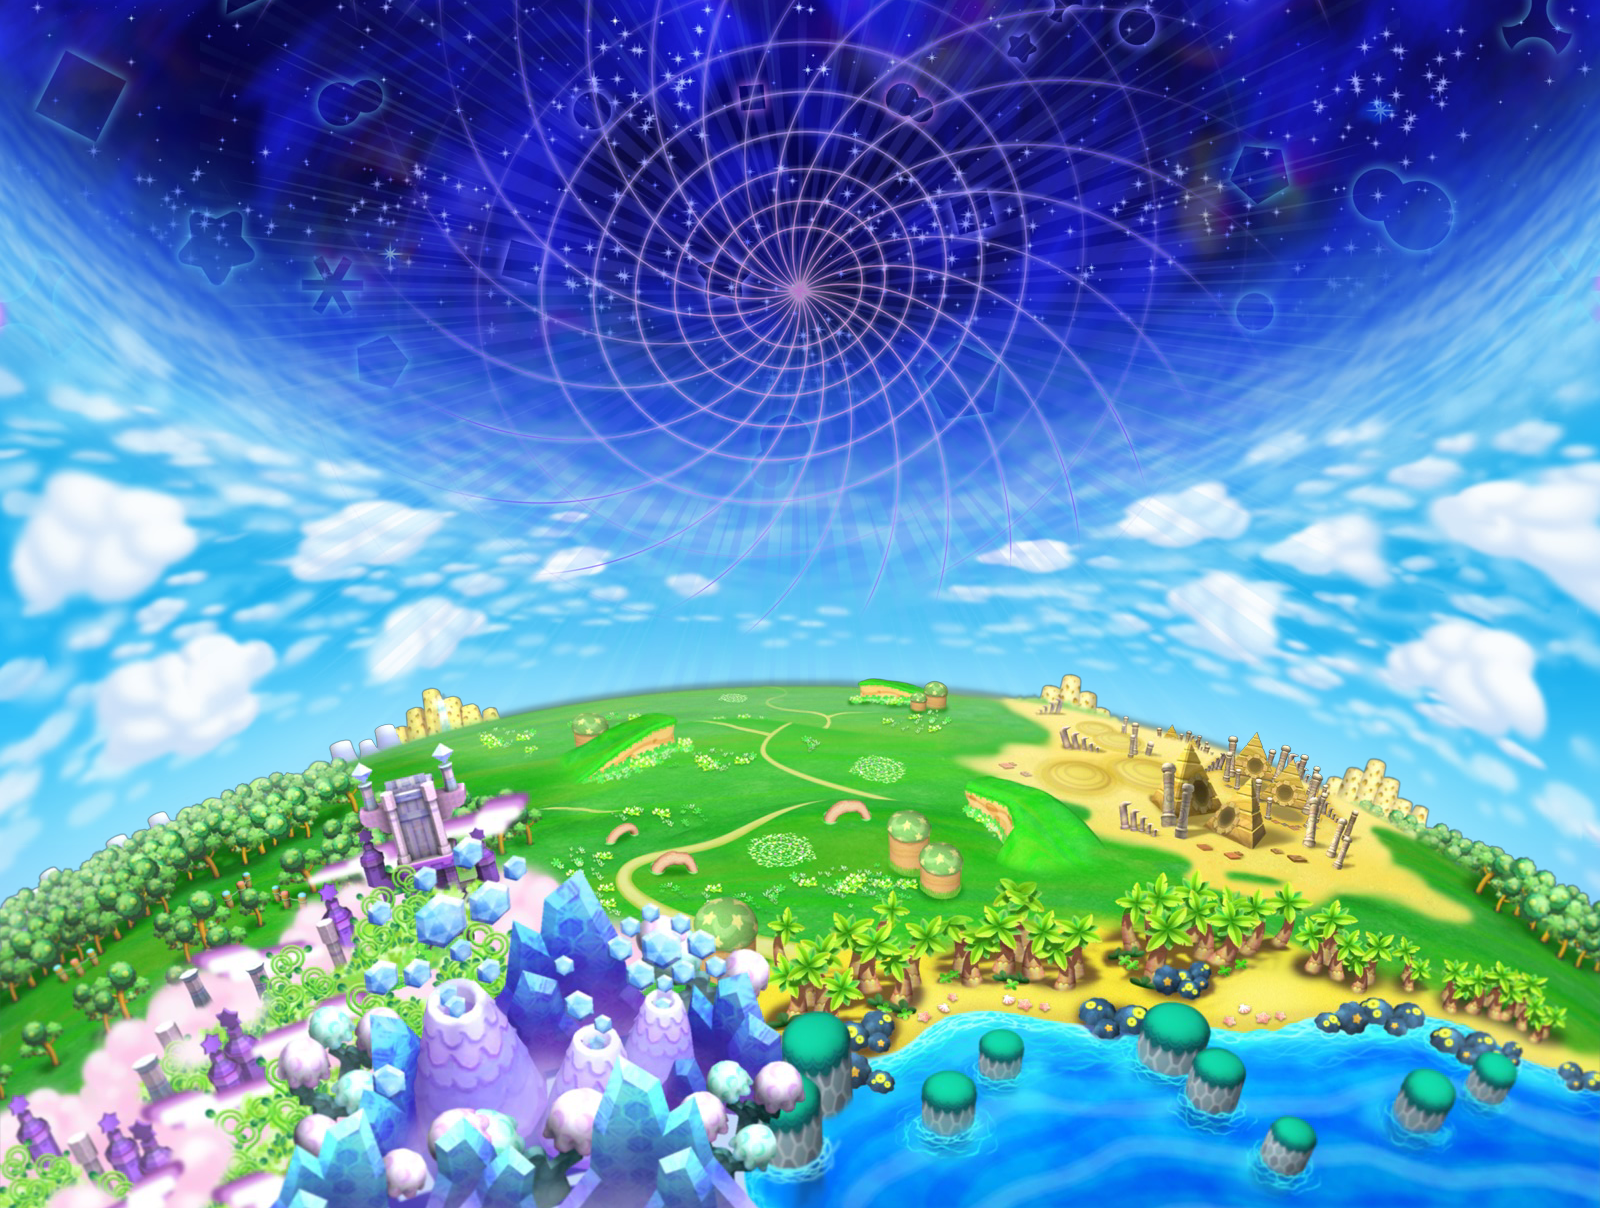 Dream Land Kirby Wiki FANDOM powered by Wikia 1600x1208